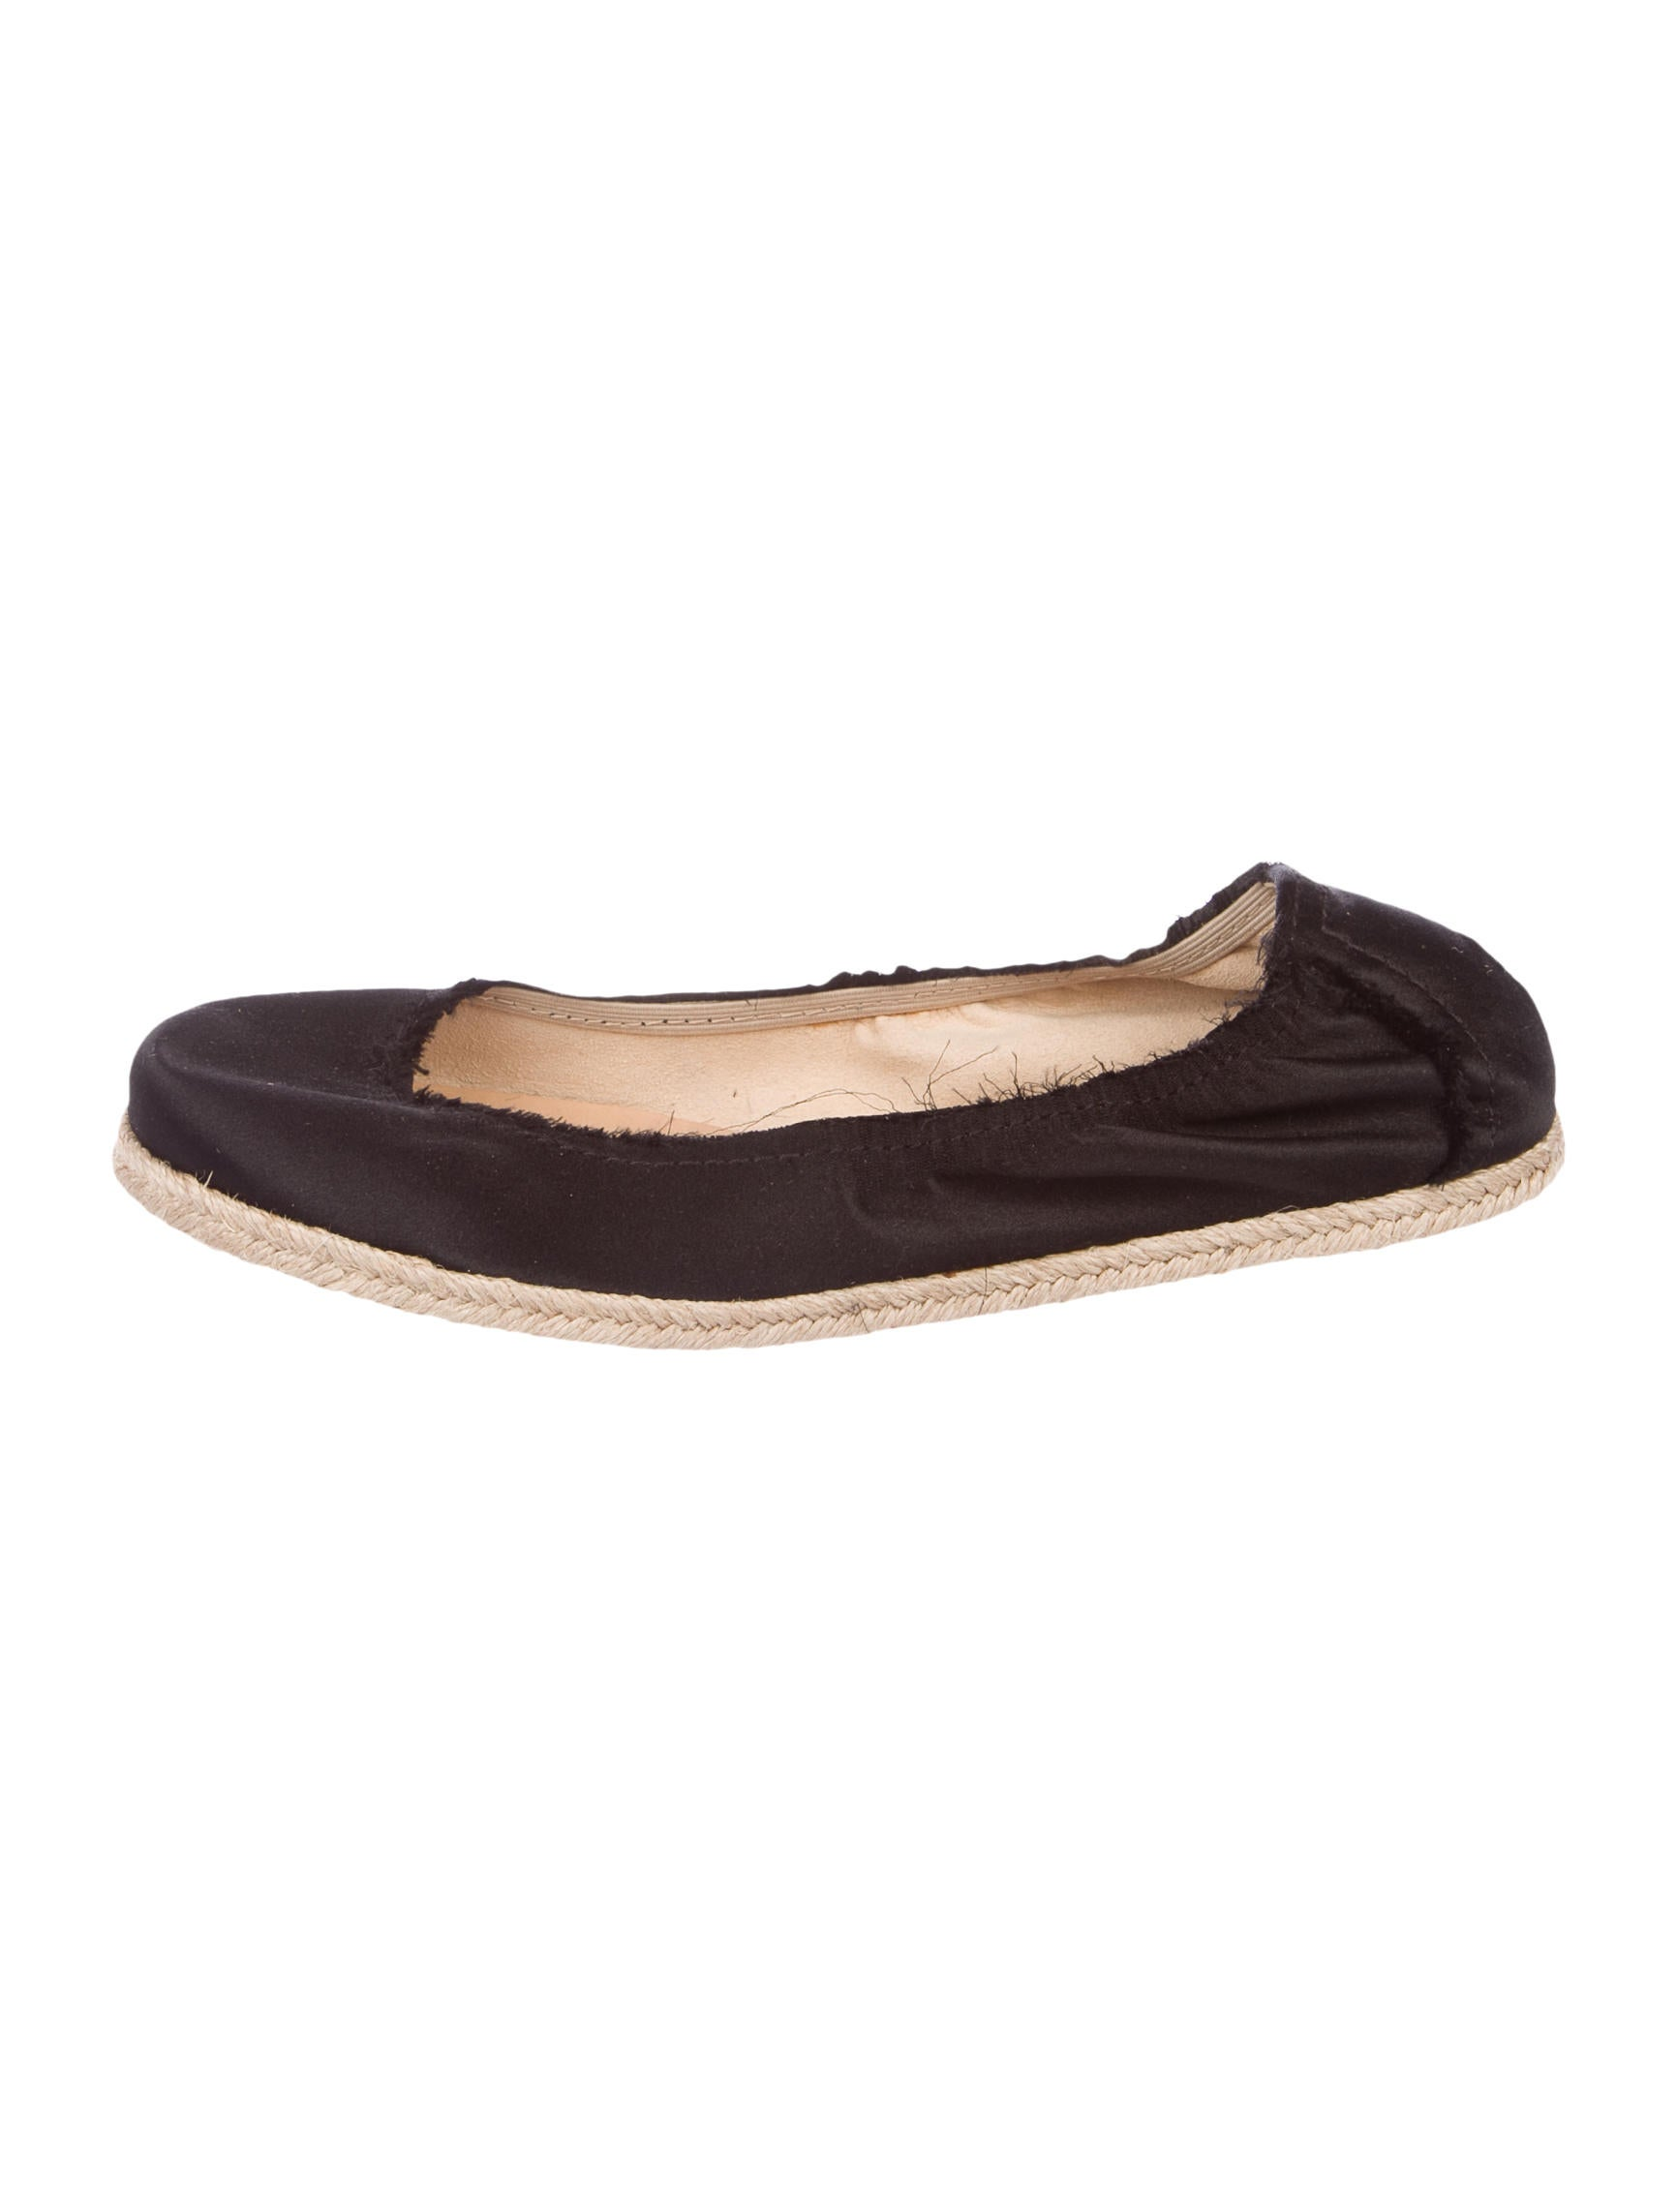 discount newest Pedro Garcia Ibiza Ballet Espadrilles cheap many kinds of 8pyYP